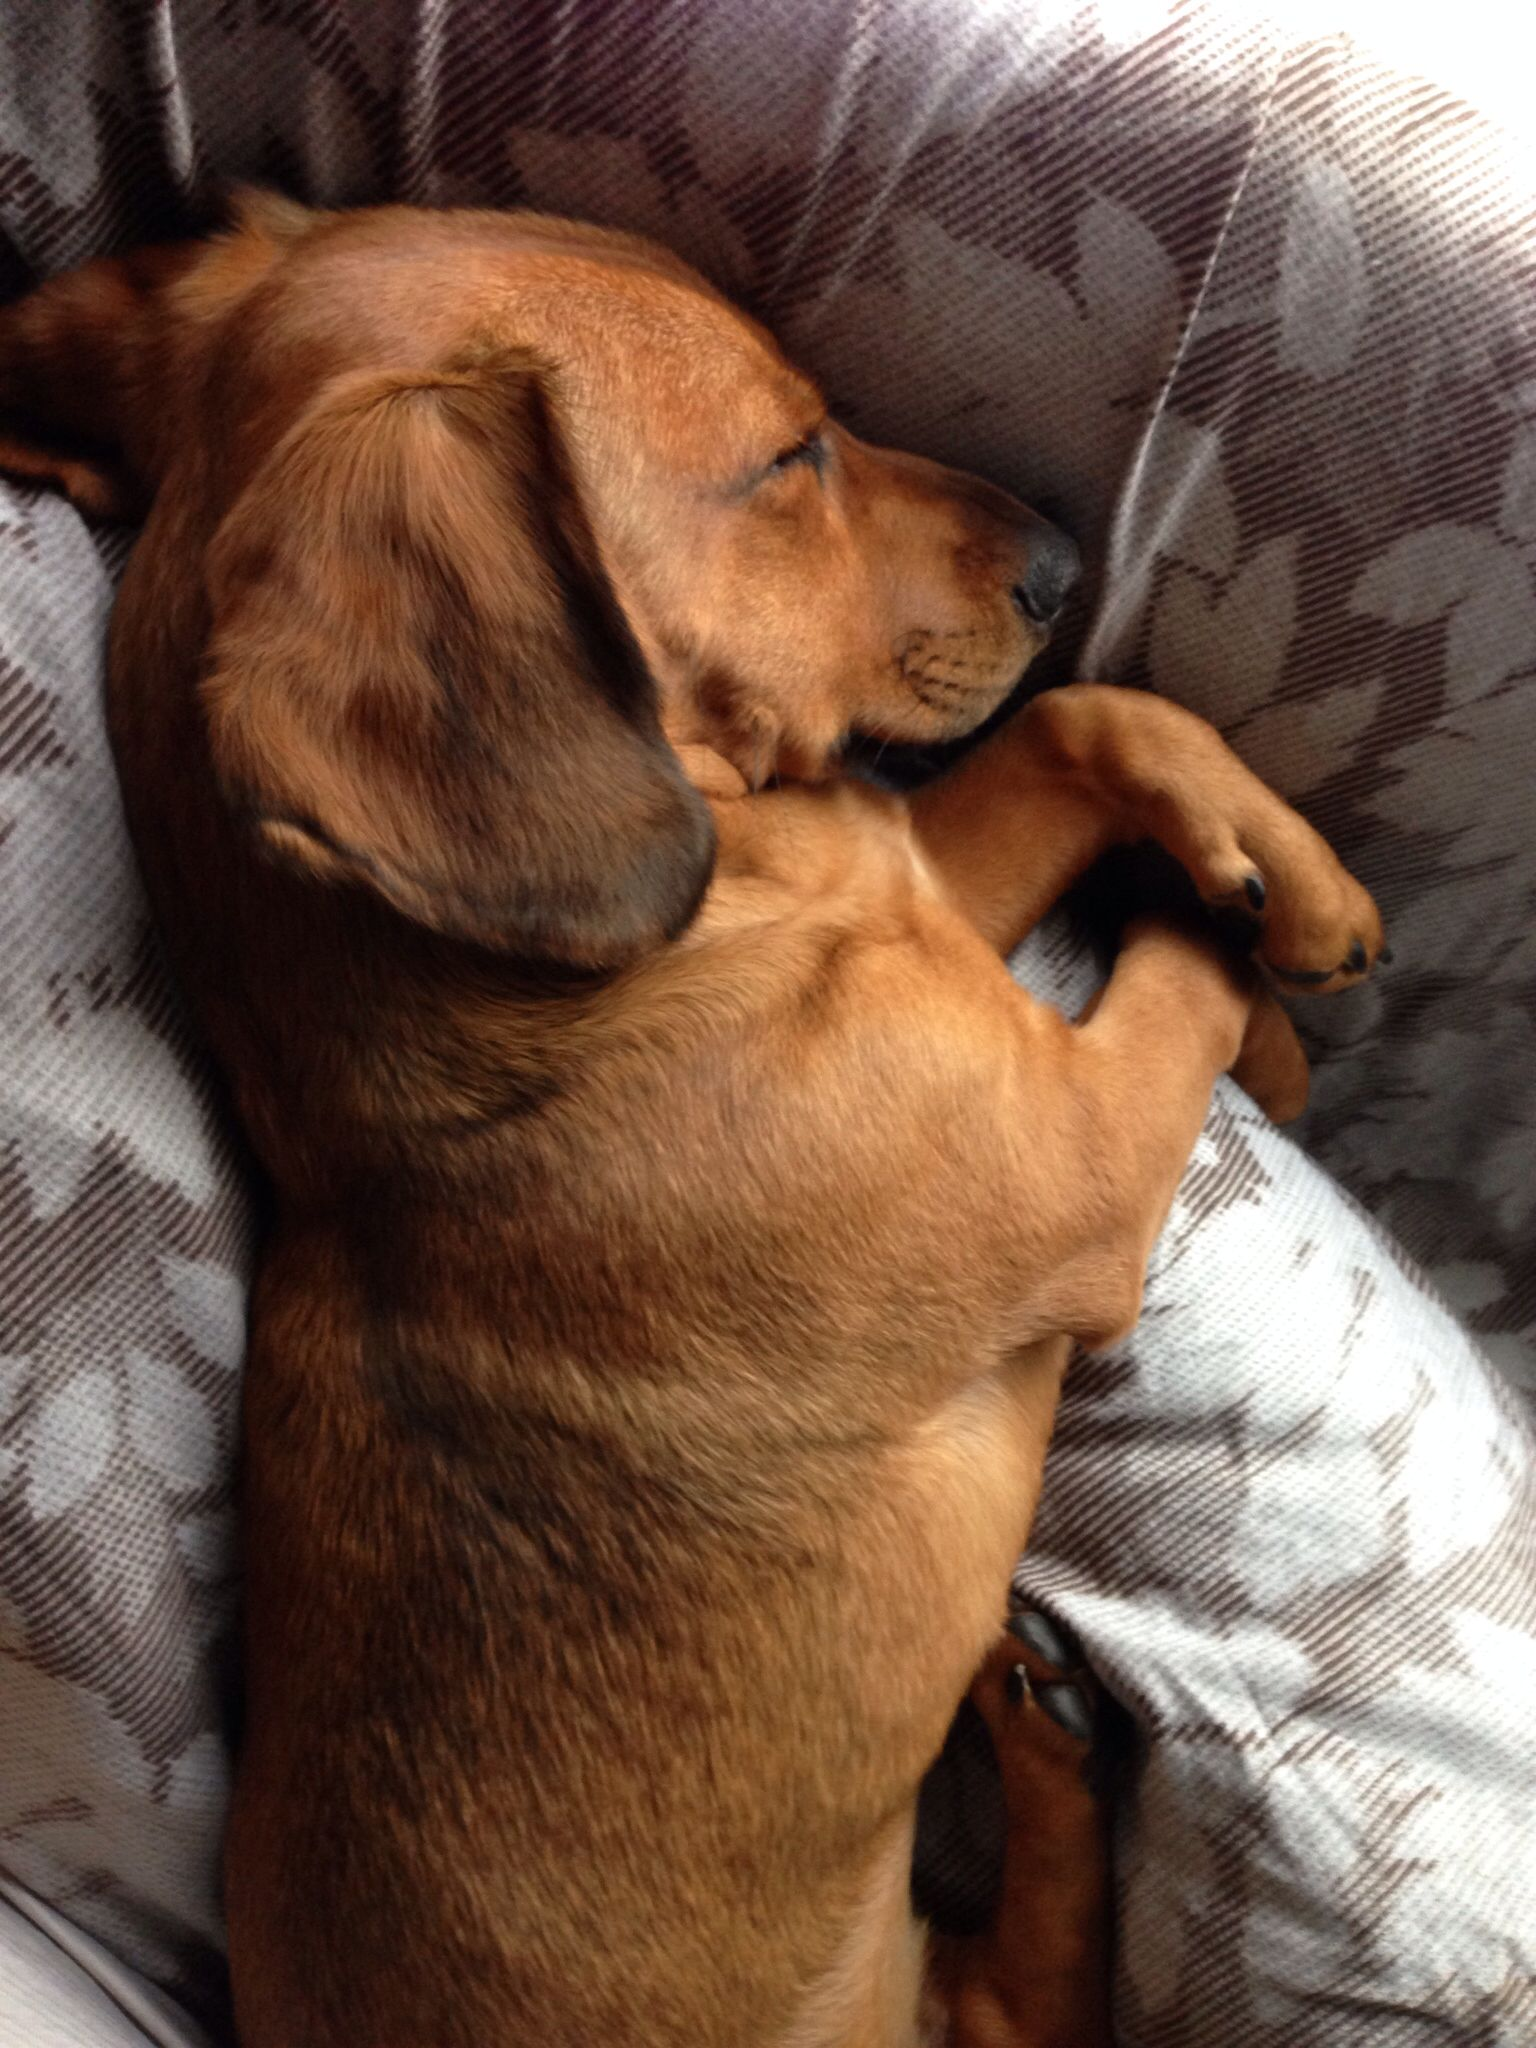 Dachshund Beagle Mix Mozart Sleeping Like An Angel Beagle Mix